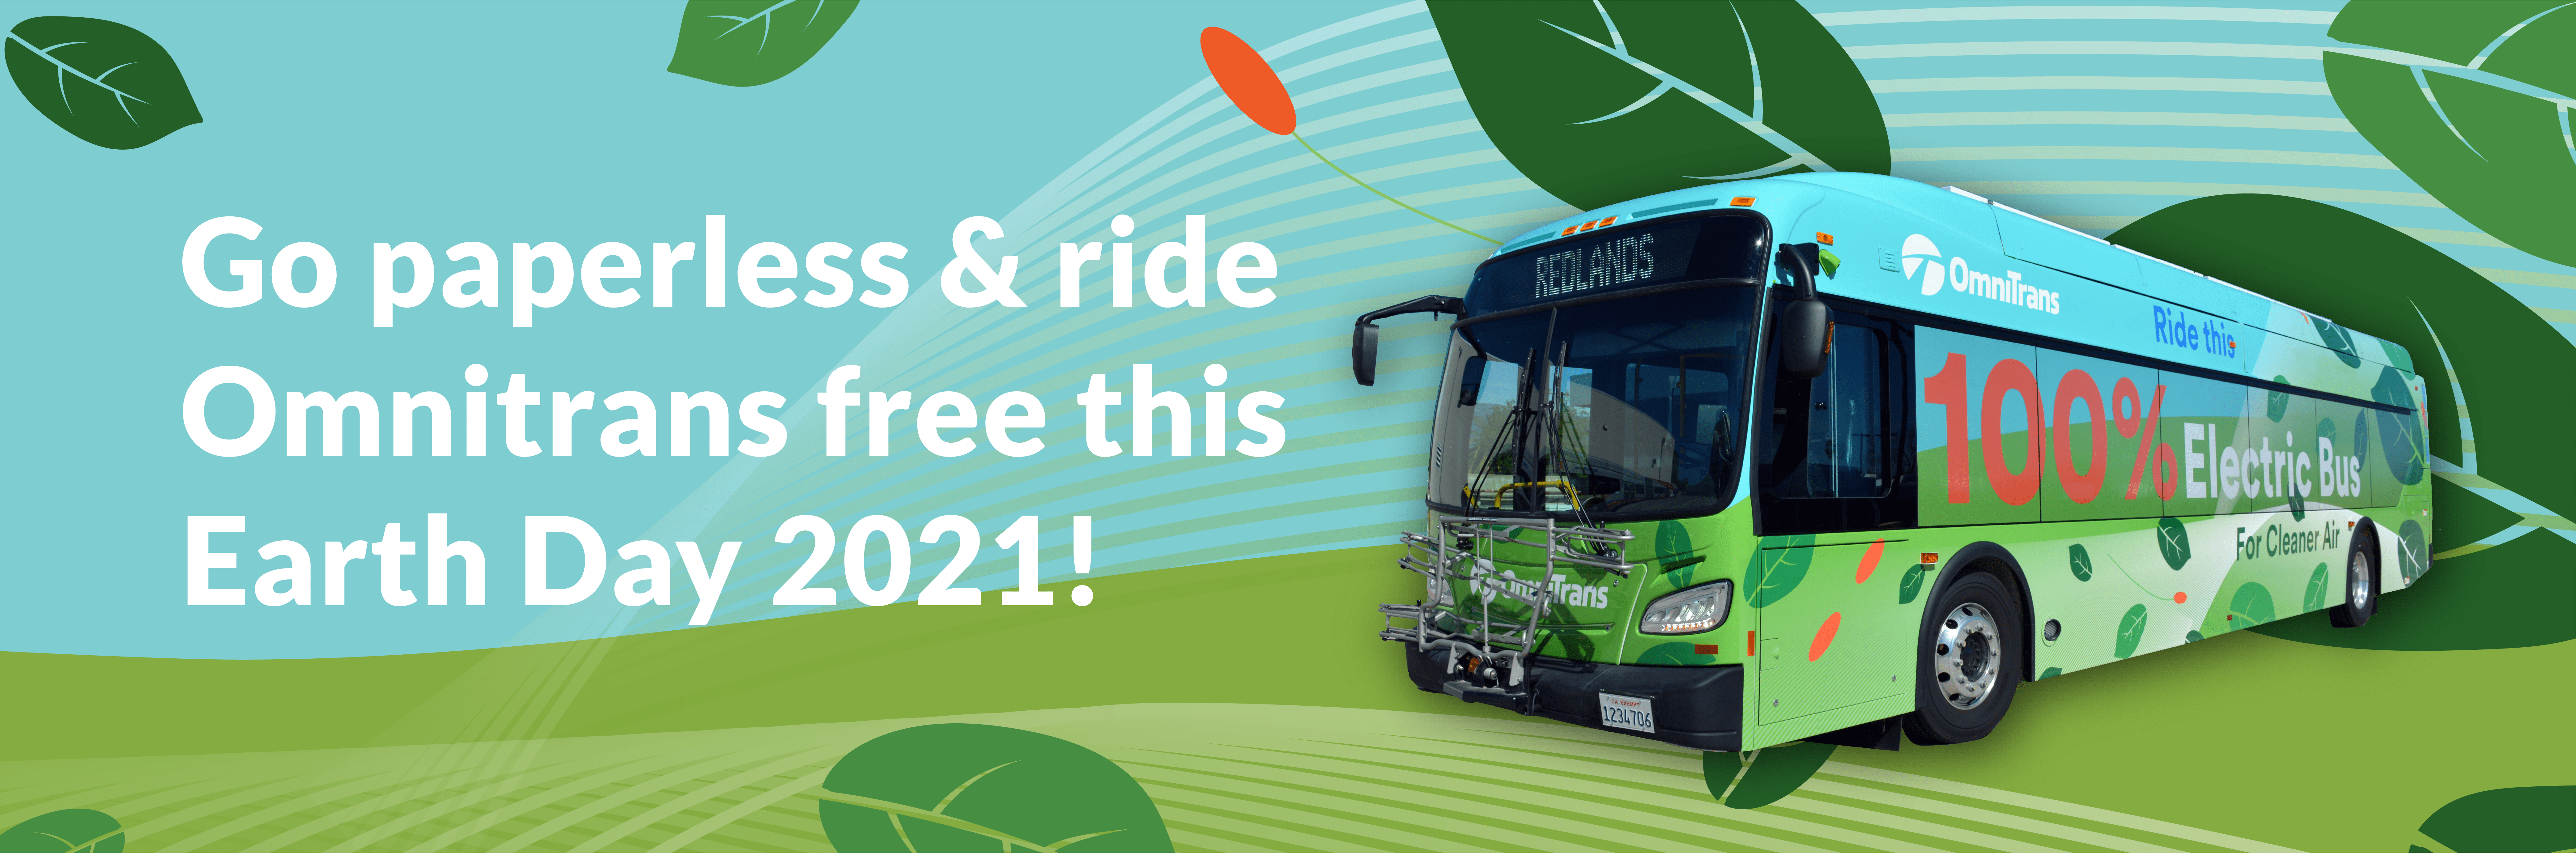 Ride Omnitrans Free with Mobile Fares to Celebrate Earth Day 2021!